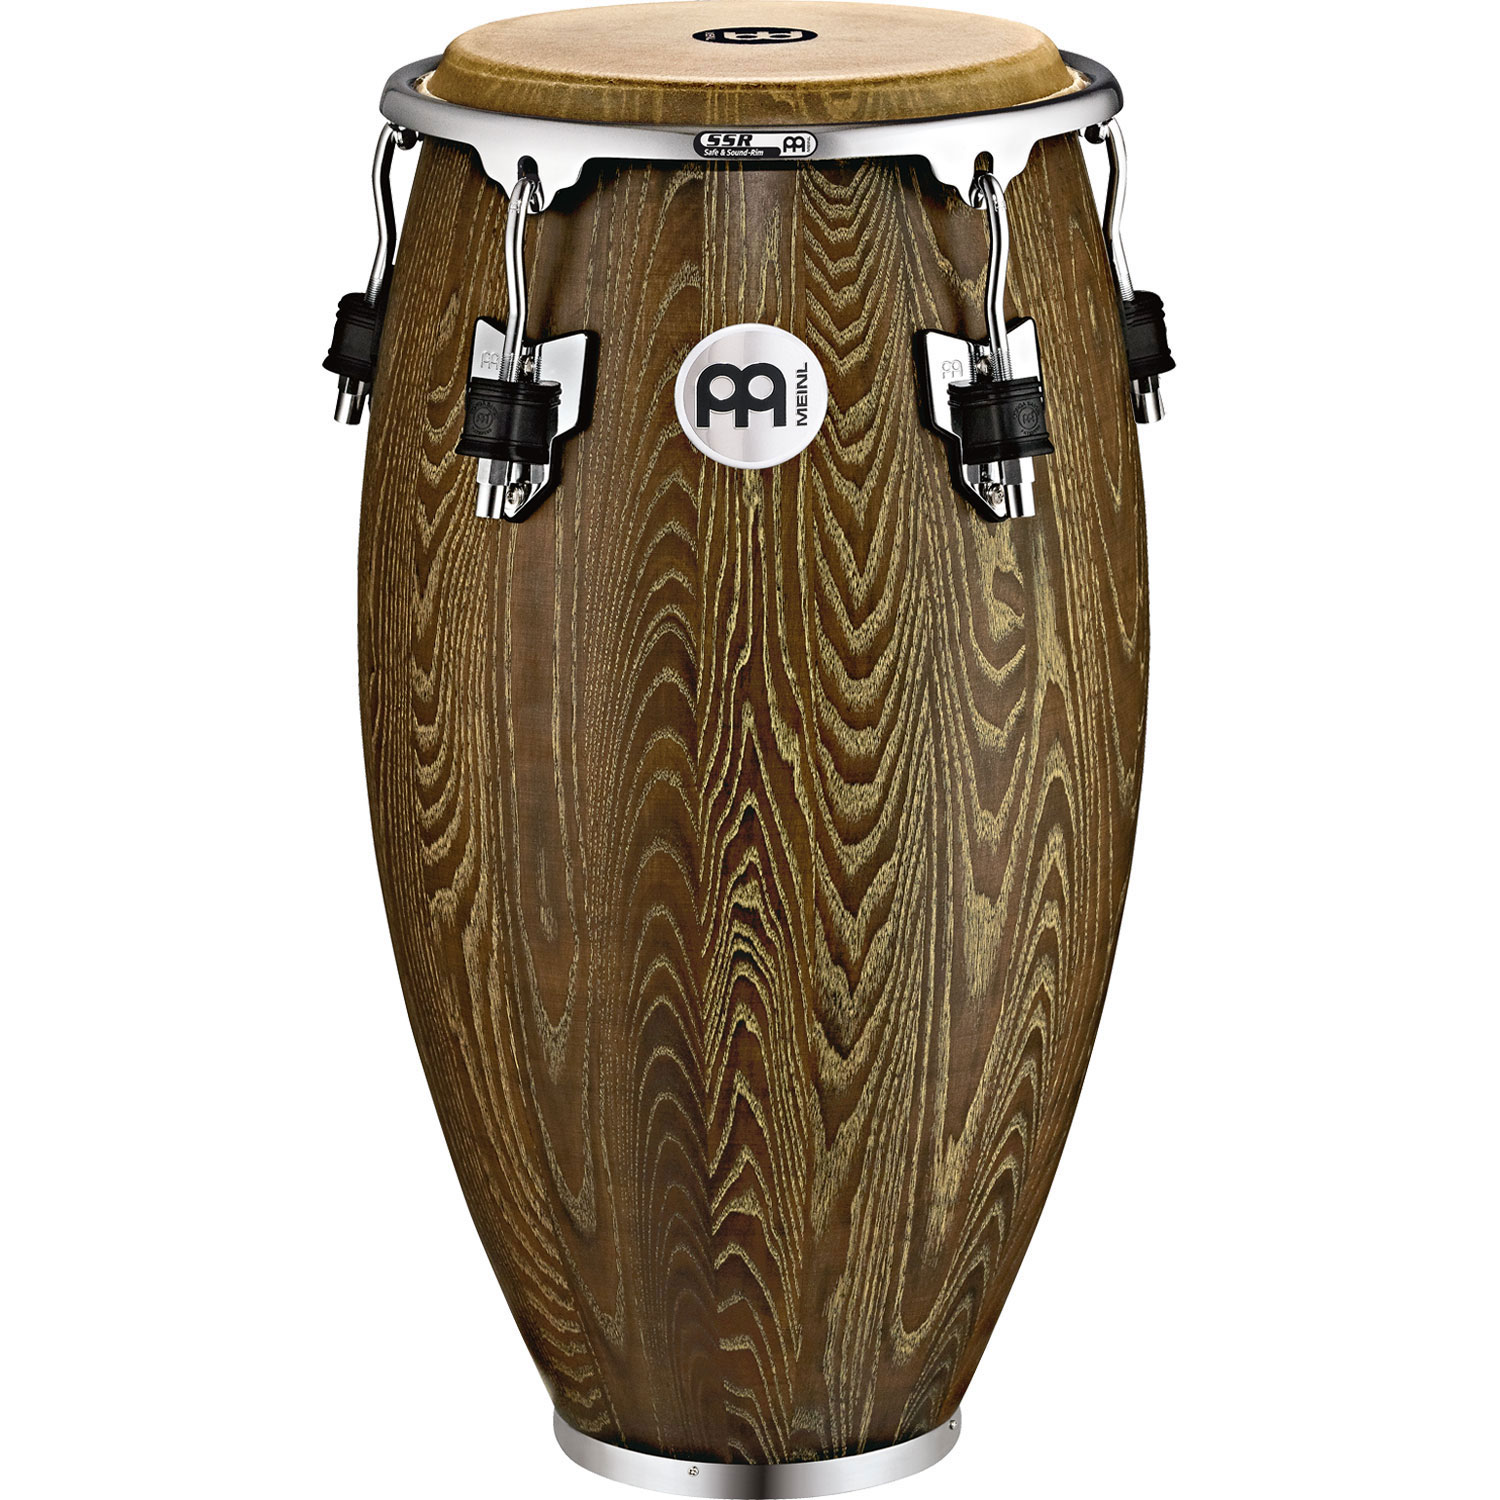 "Meinl 12.5"" Woodcraft Series Tumba Conga in Vintage Brown"